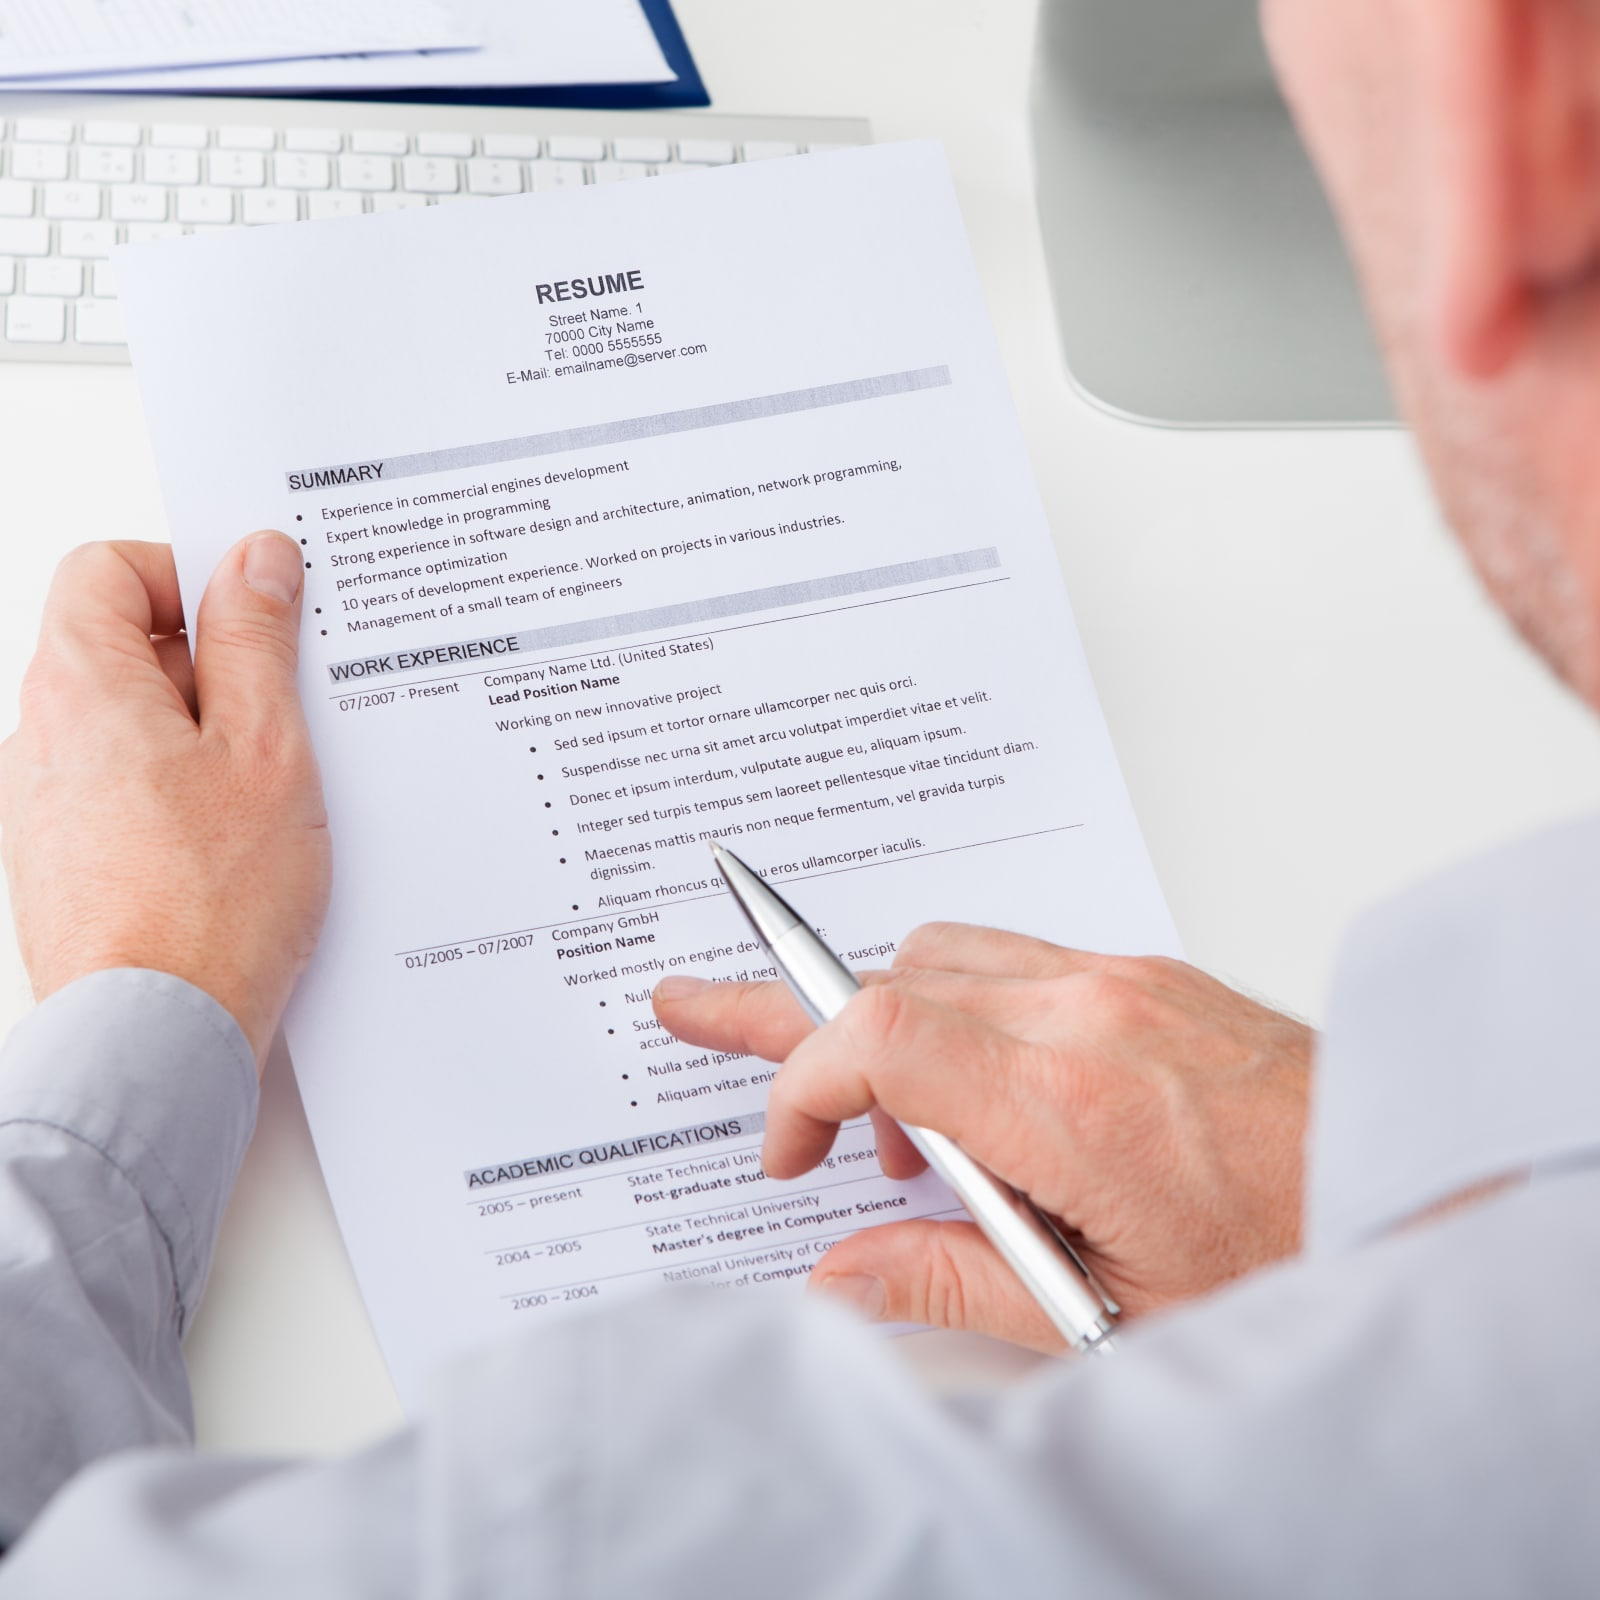 Improve Your Job Application: The Little Things You Can Do to Get Hired -  ValuePenguin